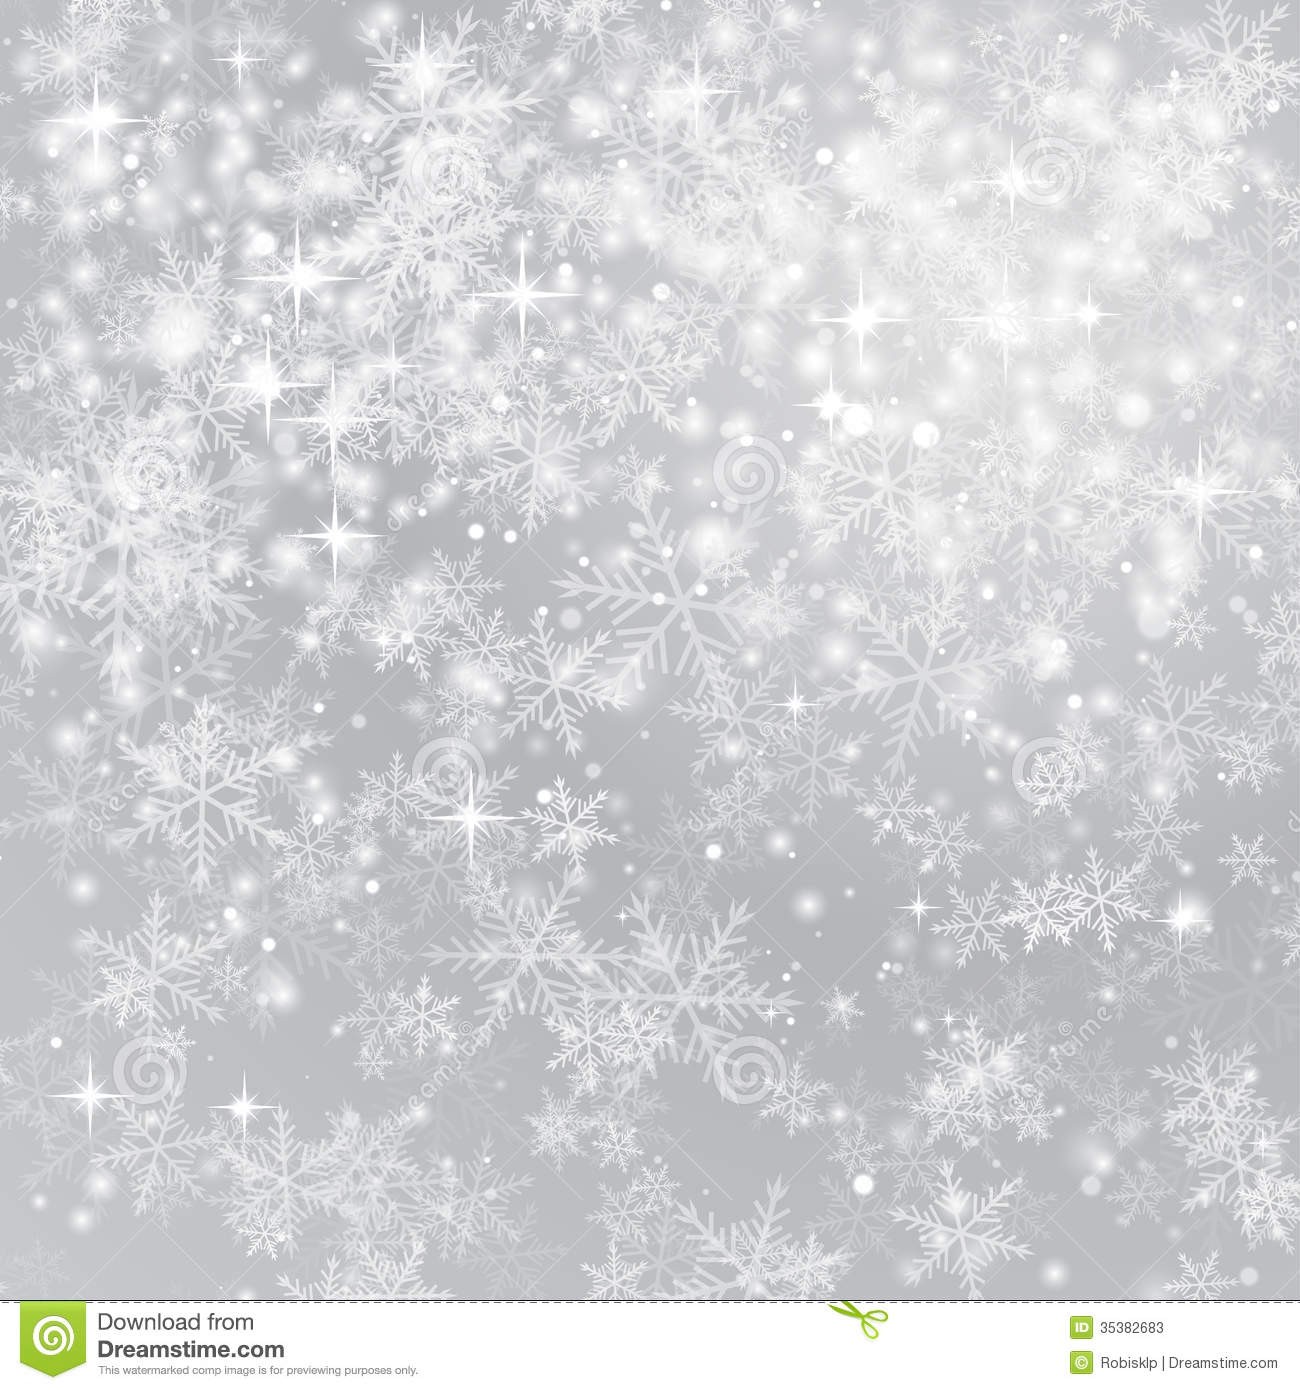 Snow Falling Wallpaper Download Winter Background Stock Photos Image 35382683